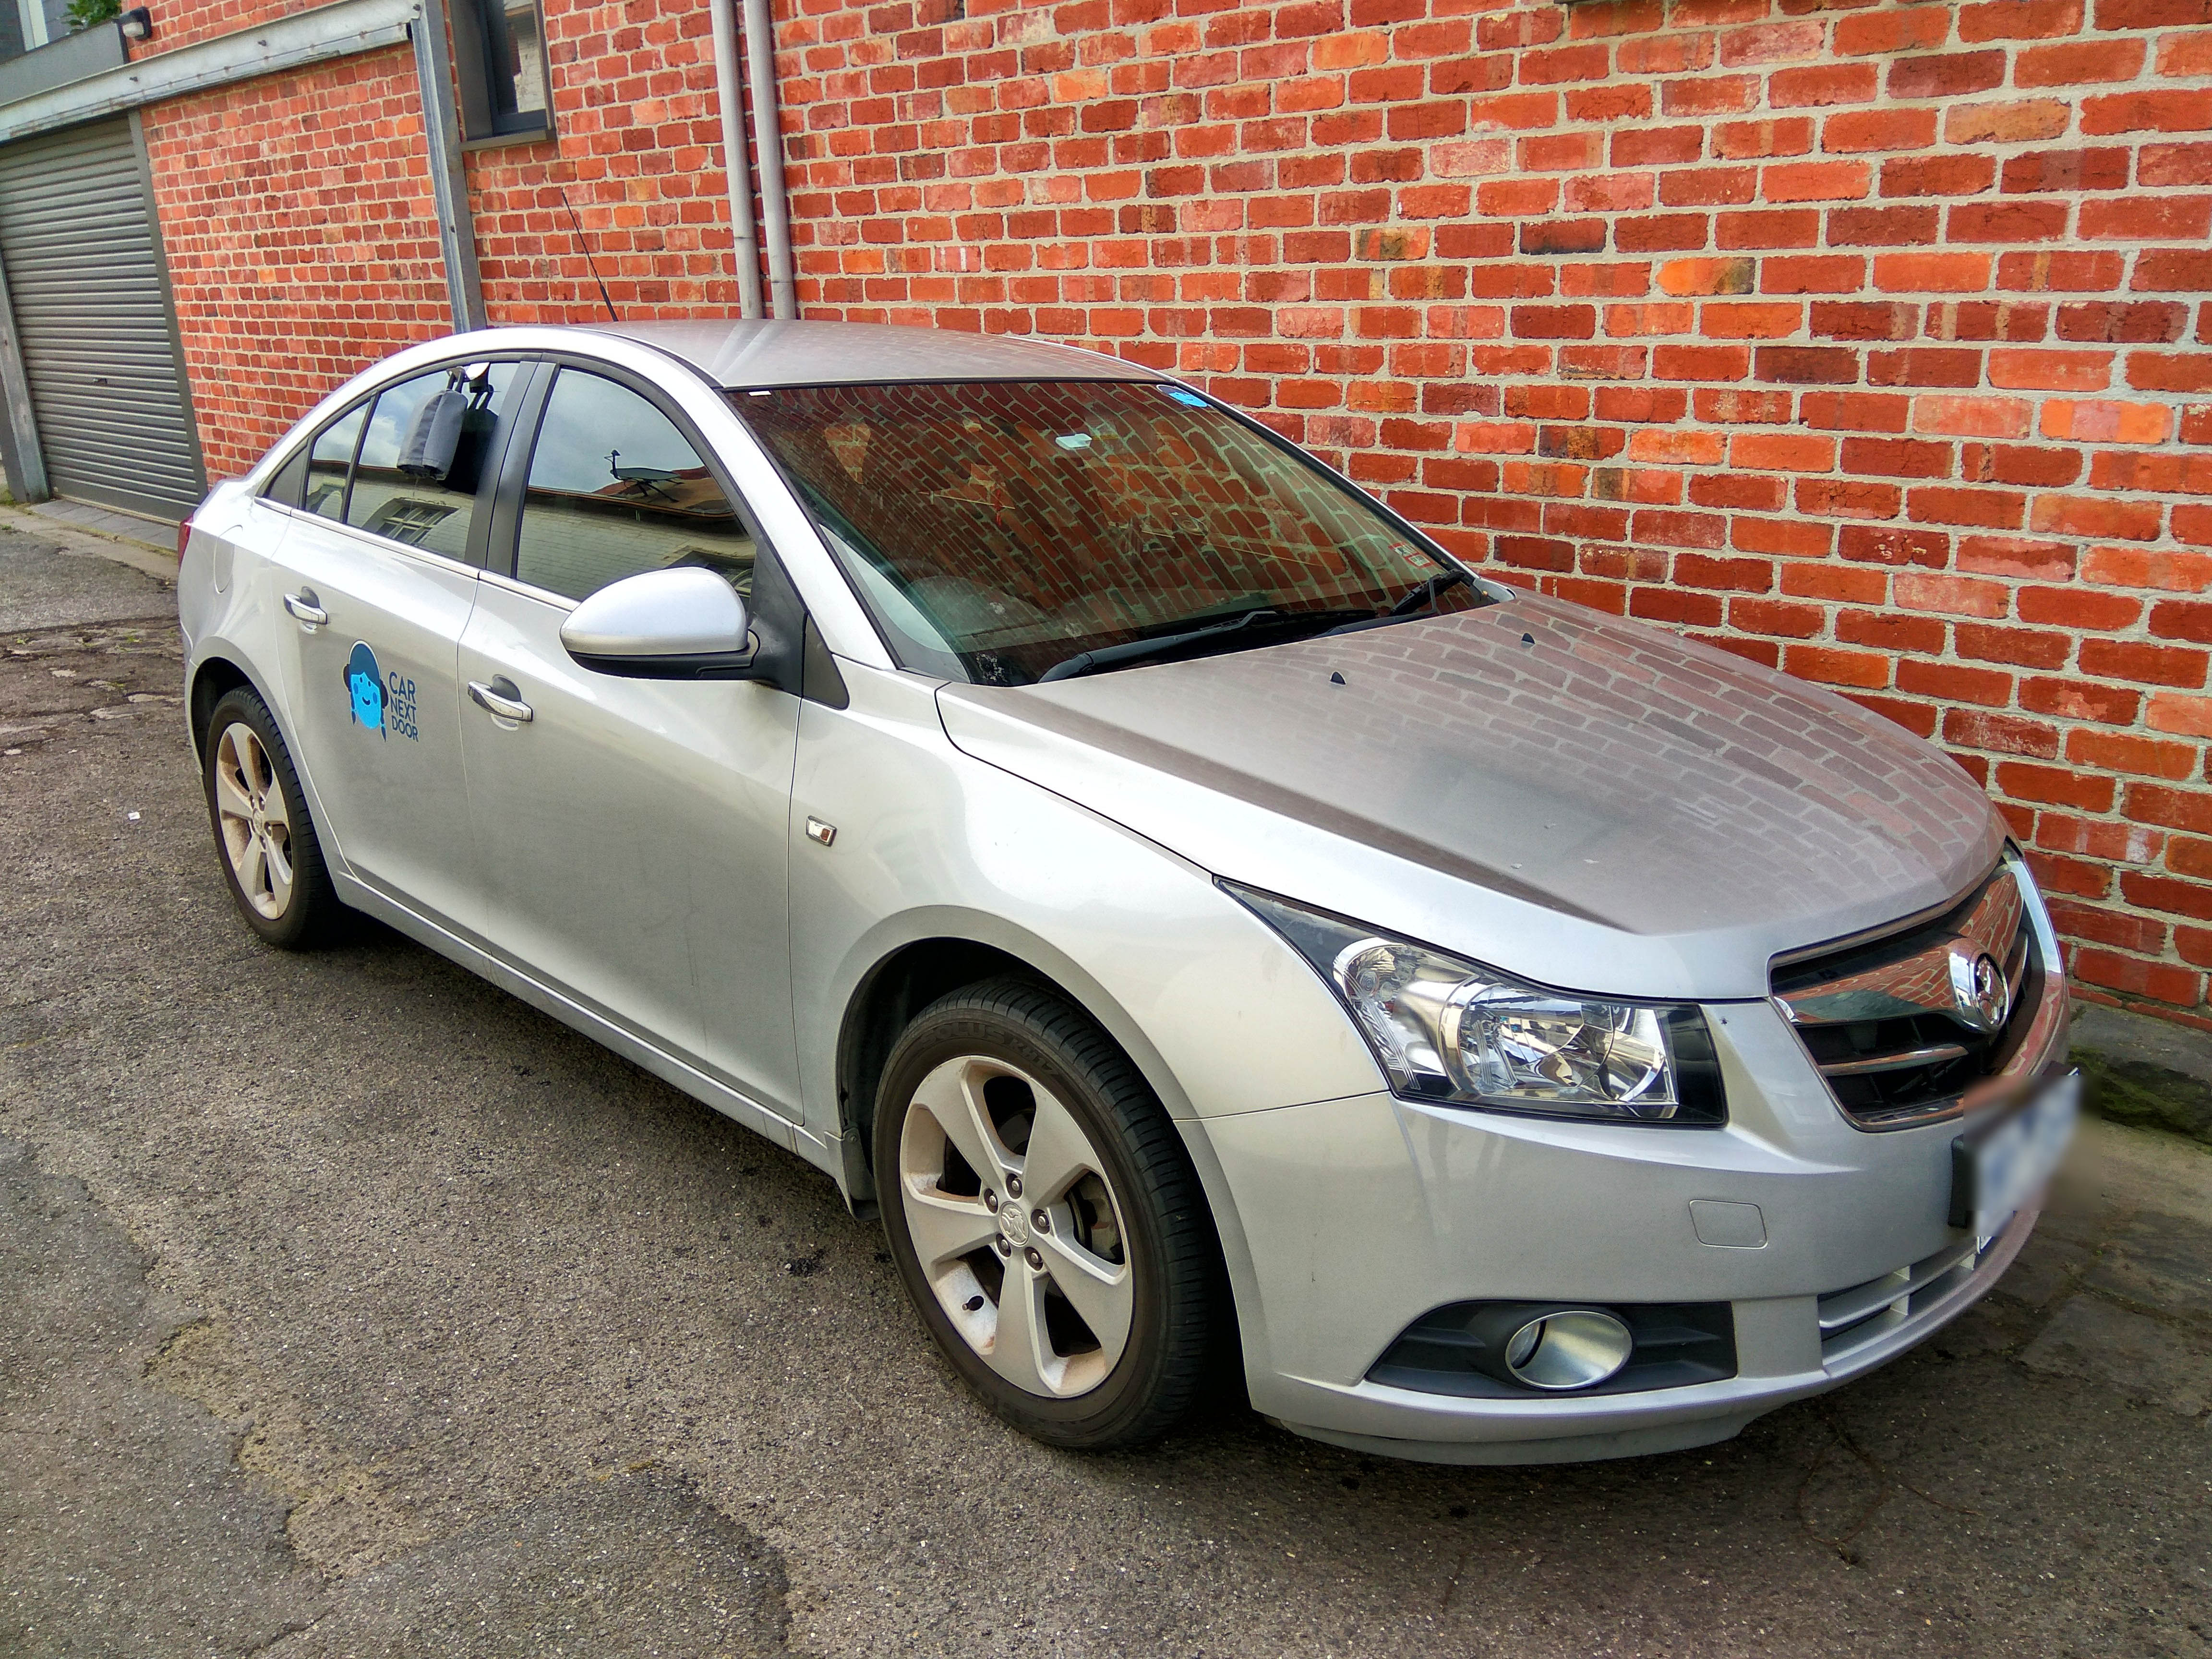 Picture of Rachael's 2010 Holden Cruze CDX